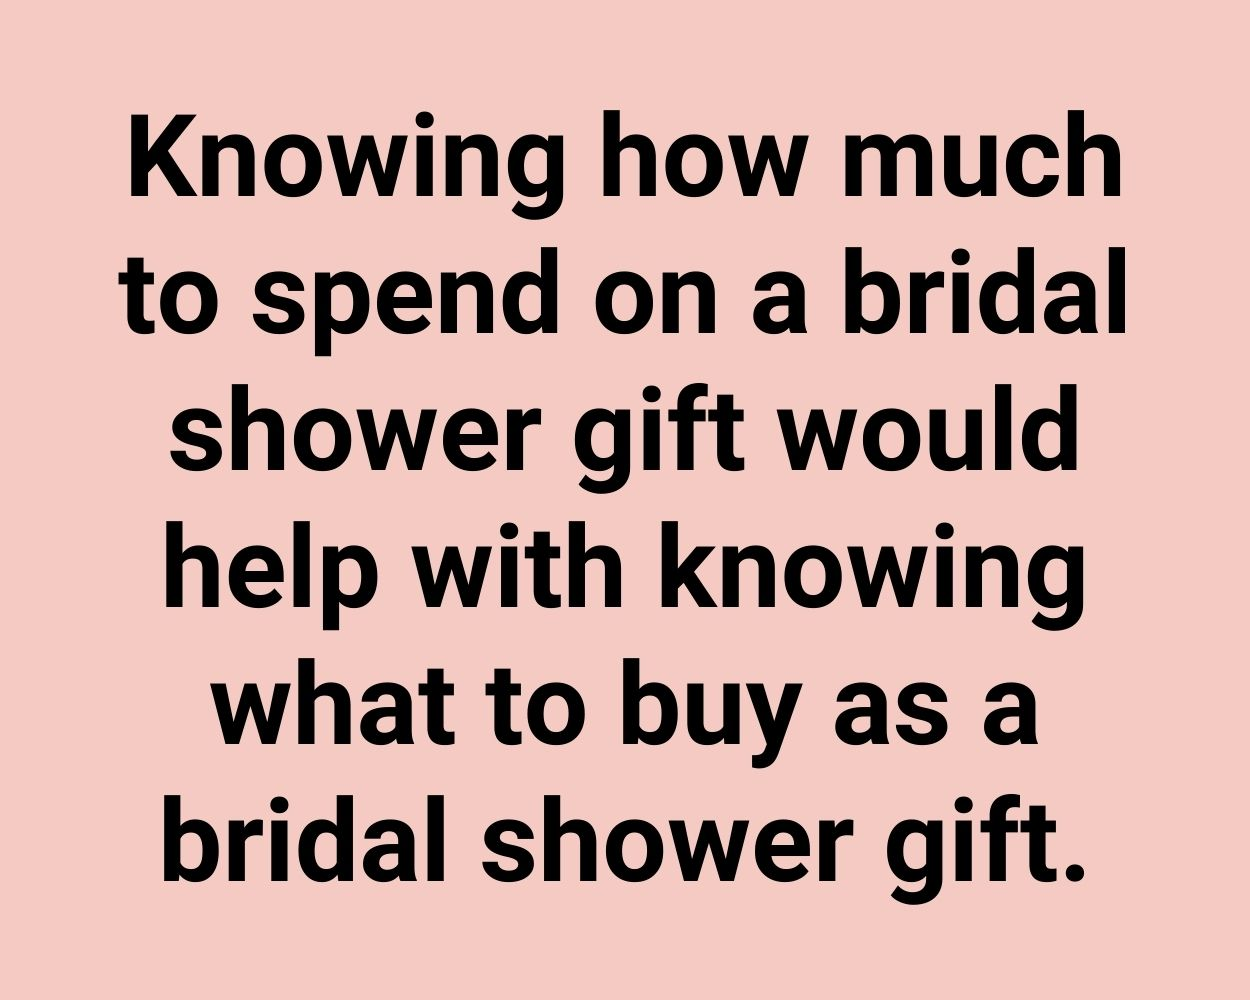 Knowing how much to spend on a bridal shower gift would help with knowing what to buy as a bridal shower gift.